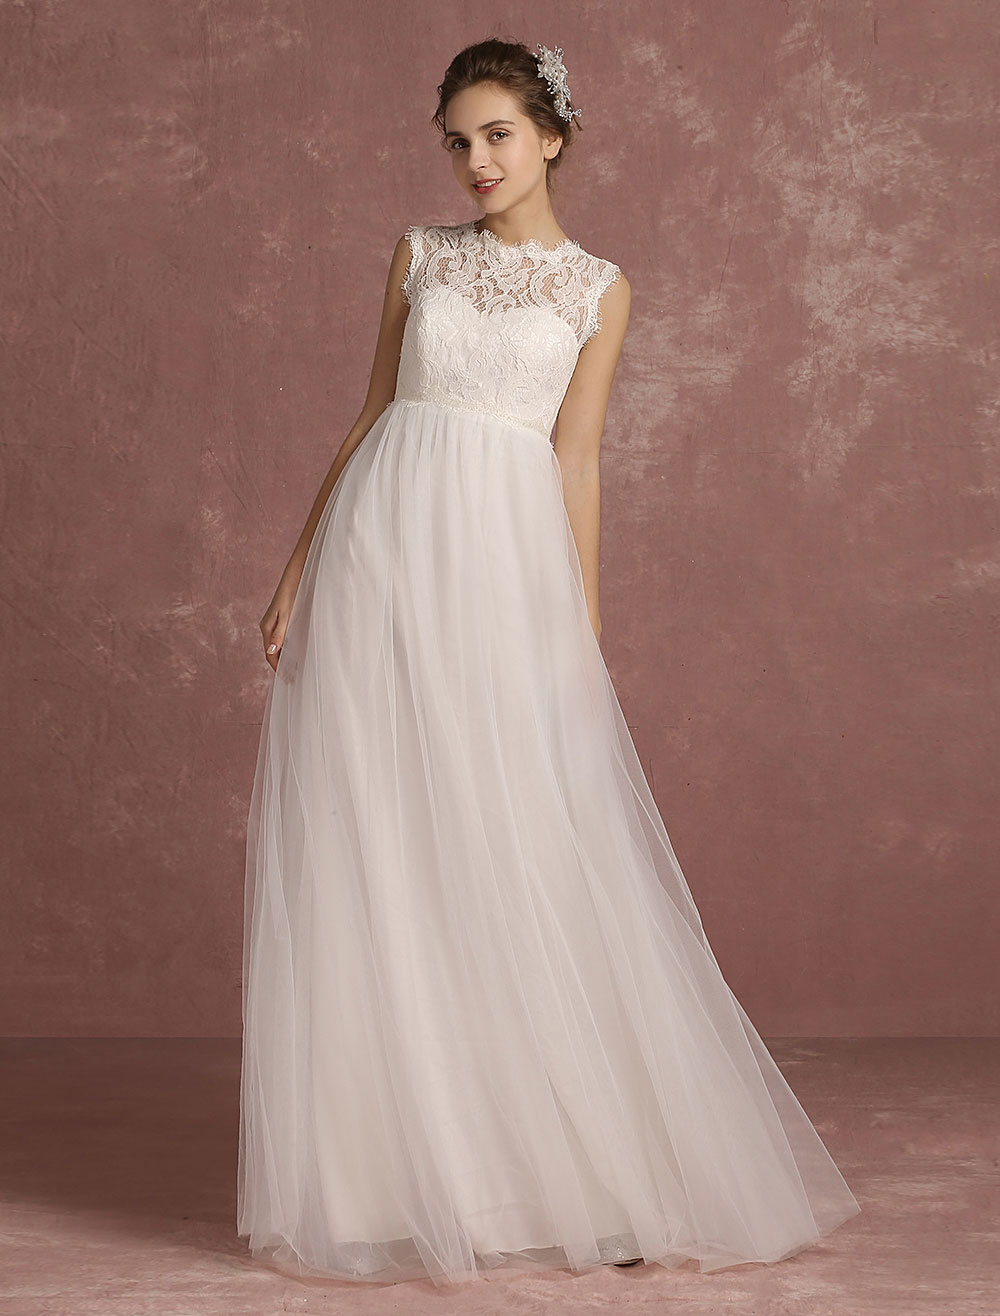 99a8ae4e63b Summer Wedding Dresses 2019 Lace Empire Waist Bridal Gown Illusion  Sleeveless Round Neck A Line Floor Length Bridal Dress - Milanoo.com